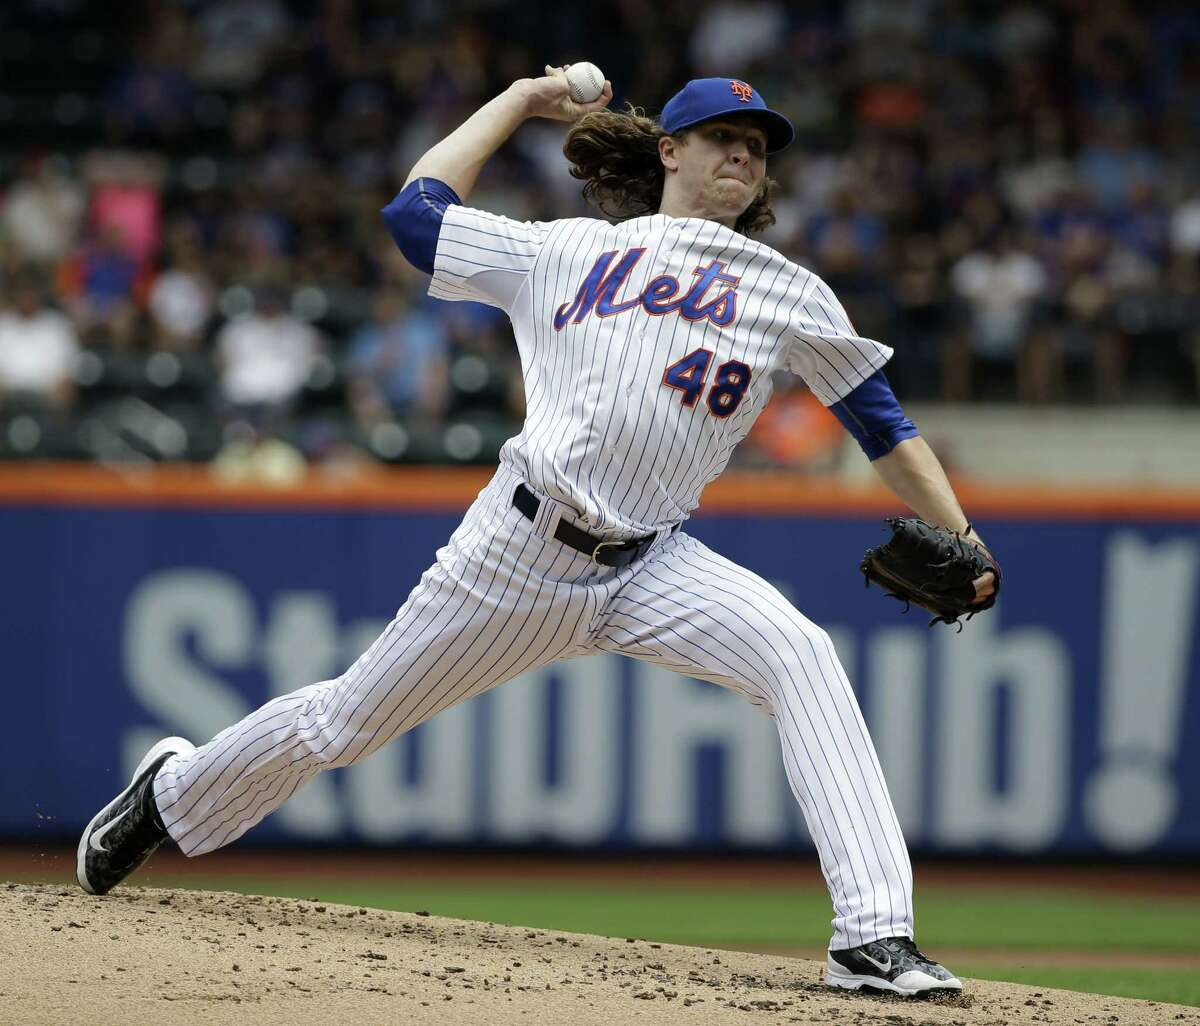 Mets starter Jacob deGrom throws during the second inning of Thursday's 6-1 loss to the Chicago Cubs at Citi Field in New York.